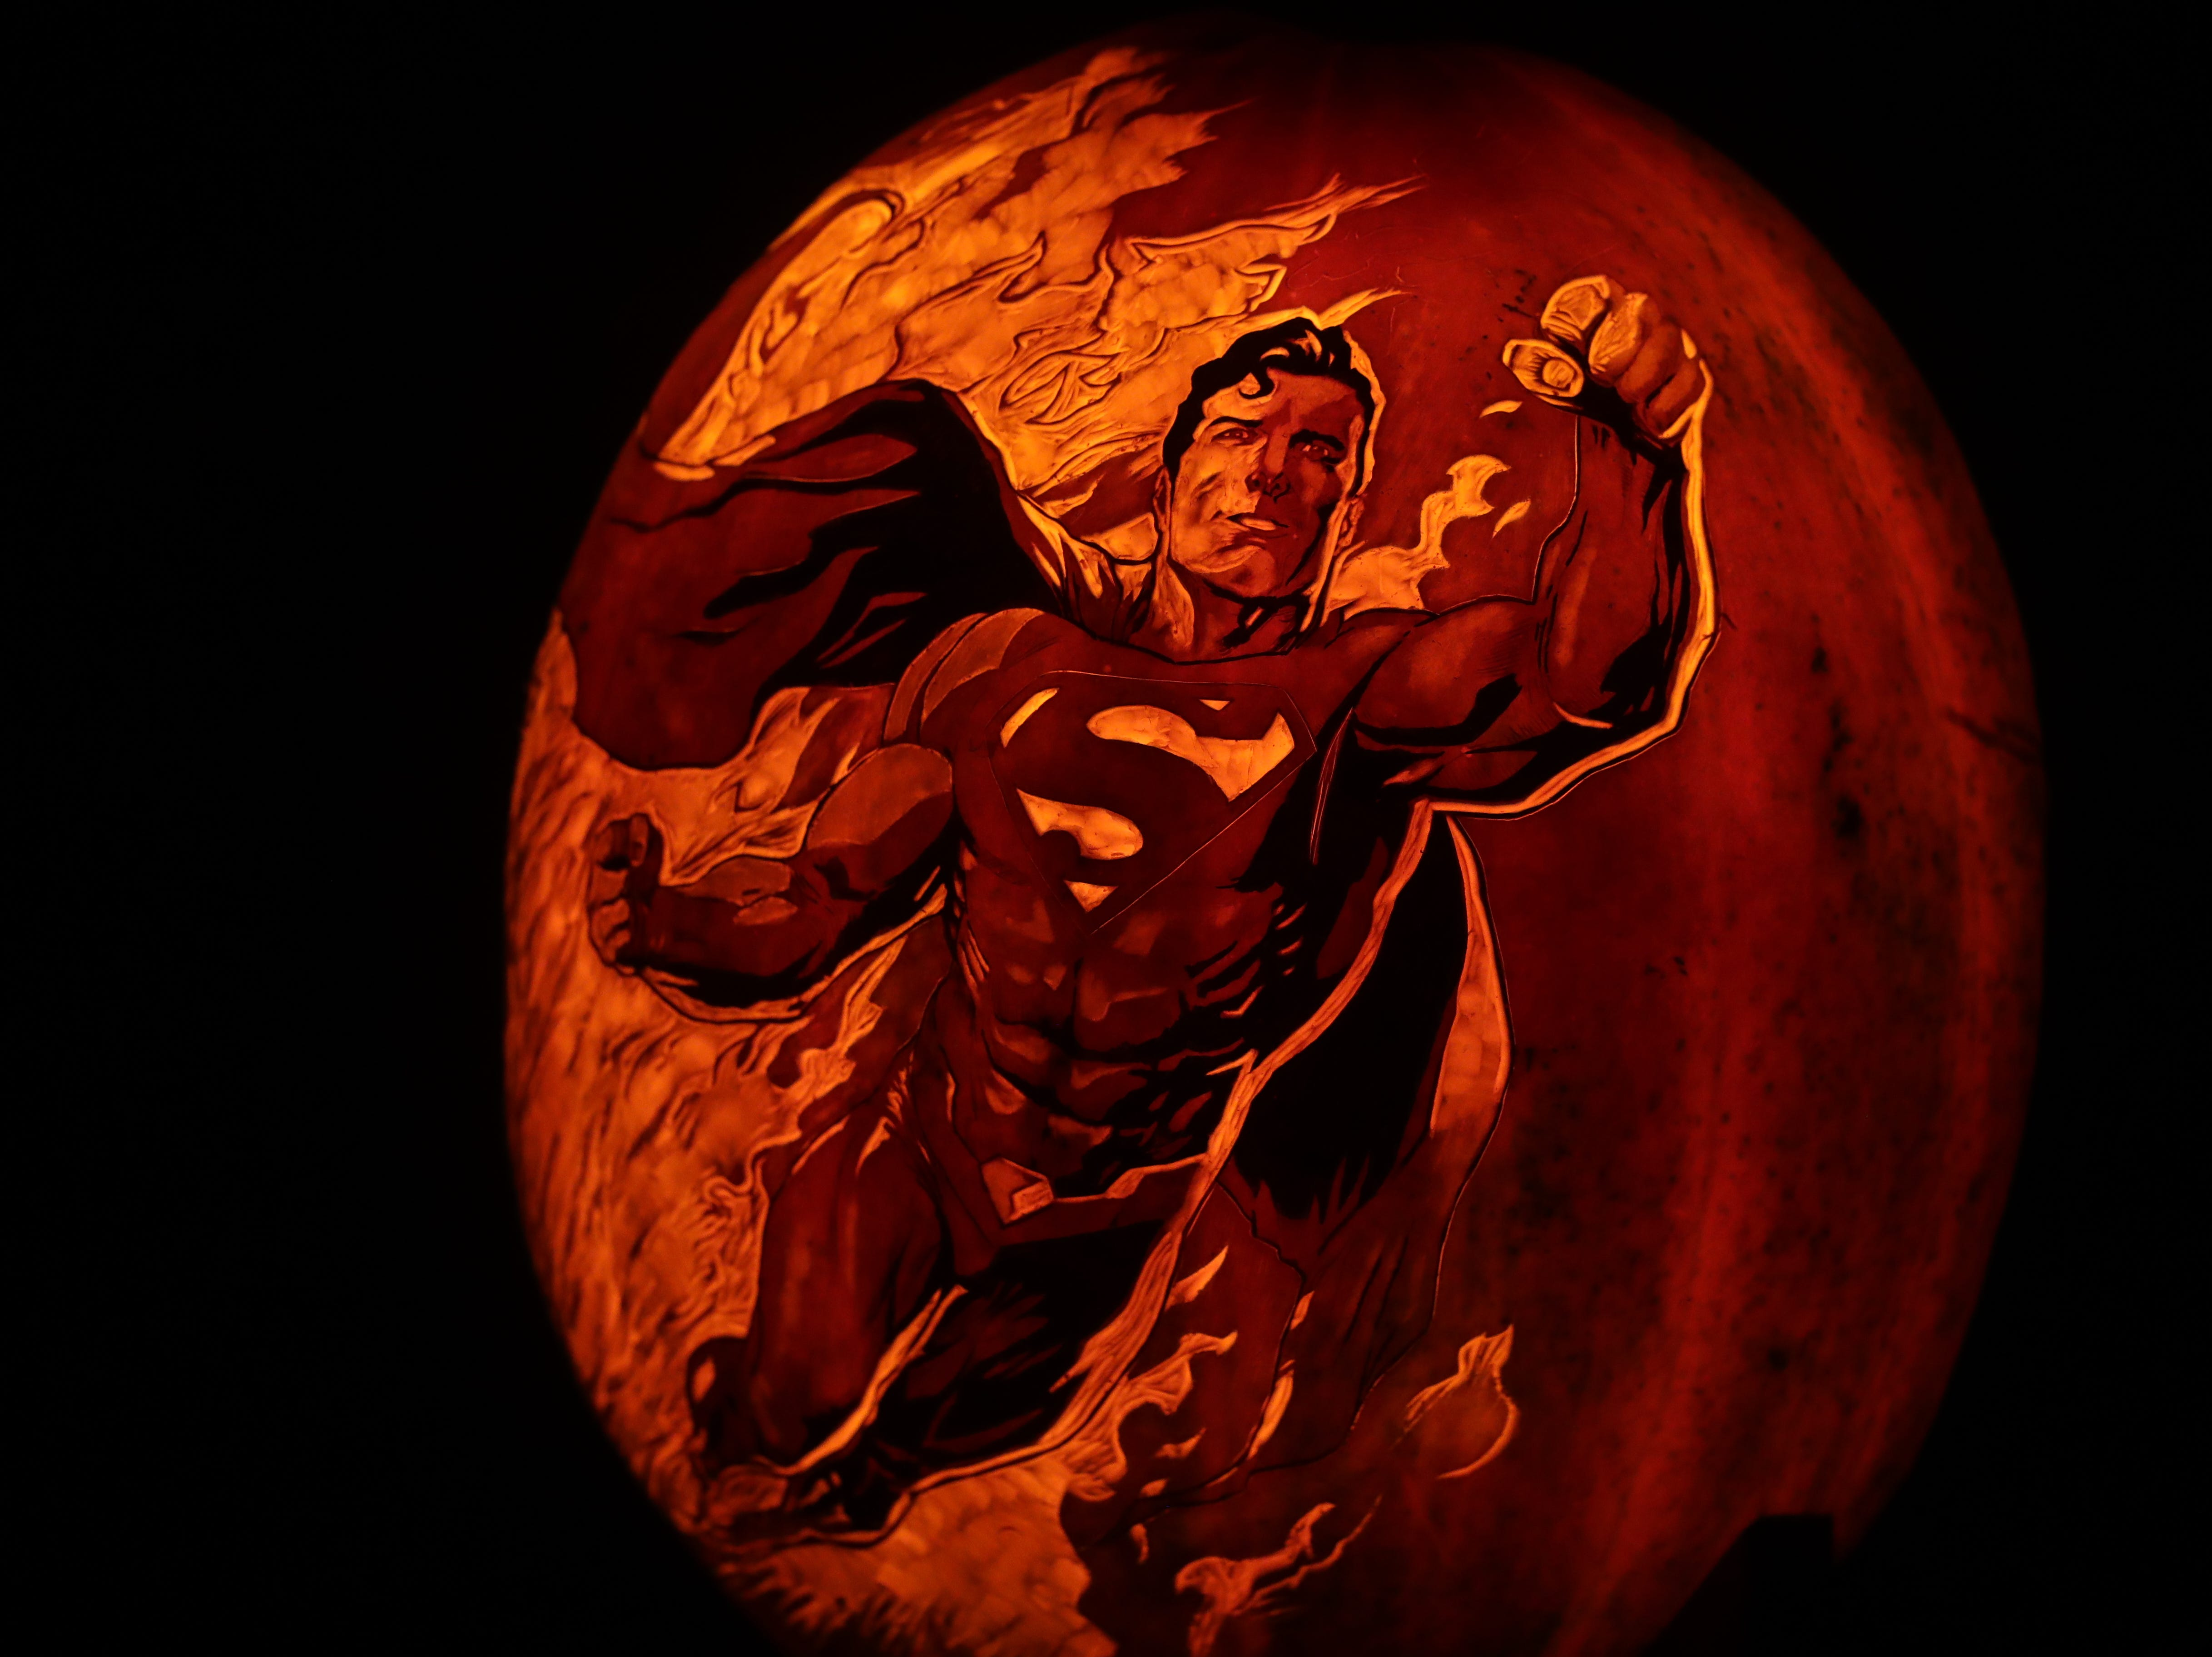 Superman appears on a pumpkin at this year's Jack O' Lantern Spectacular. Oct. 9, 2018